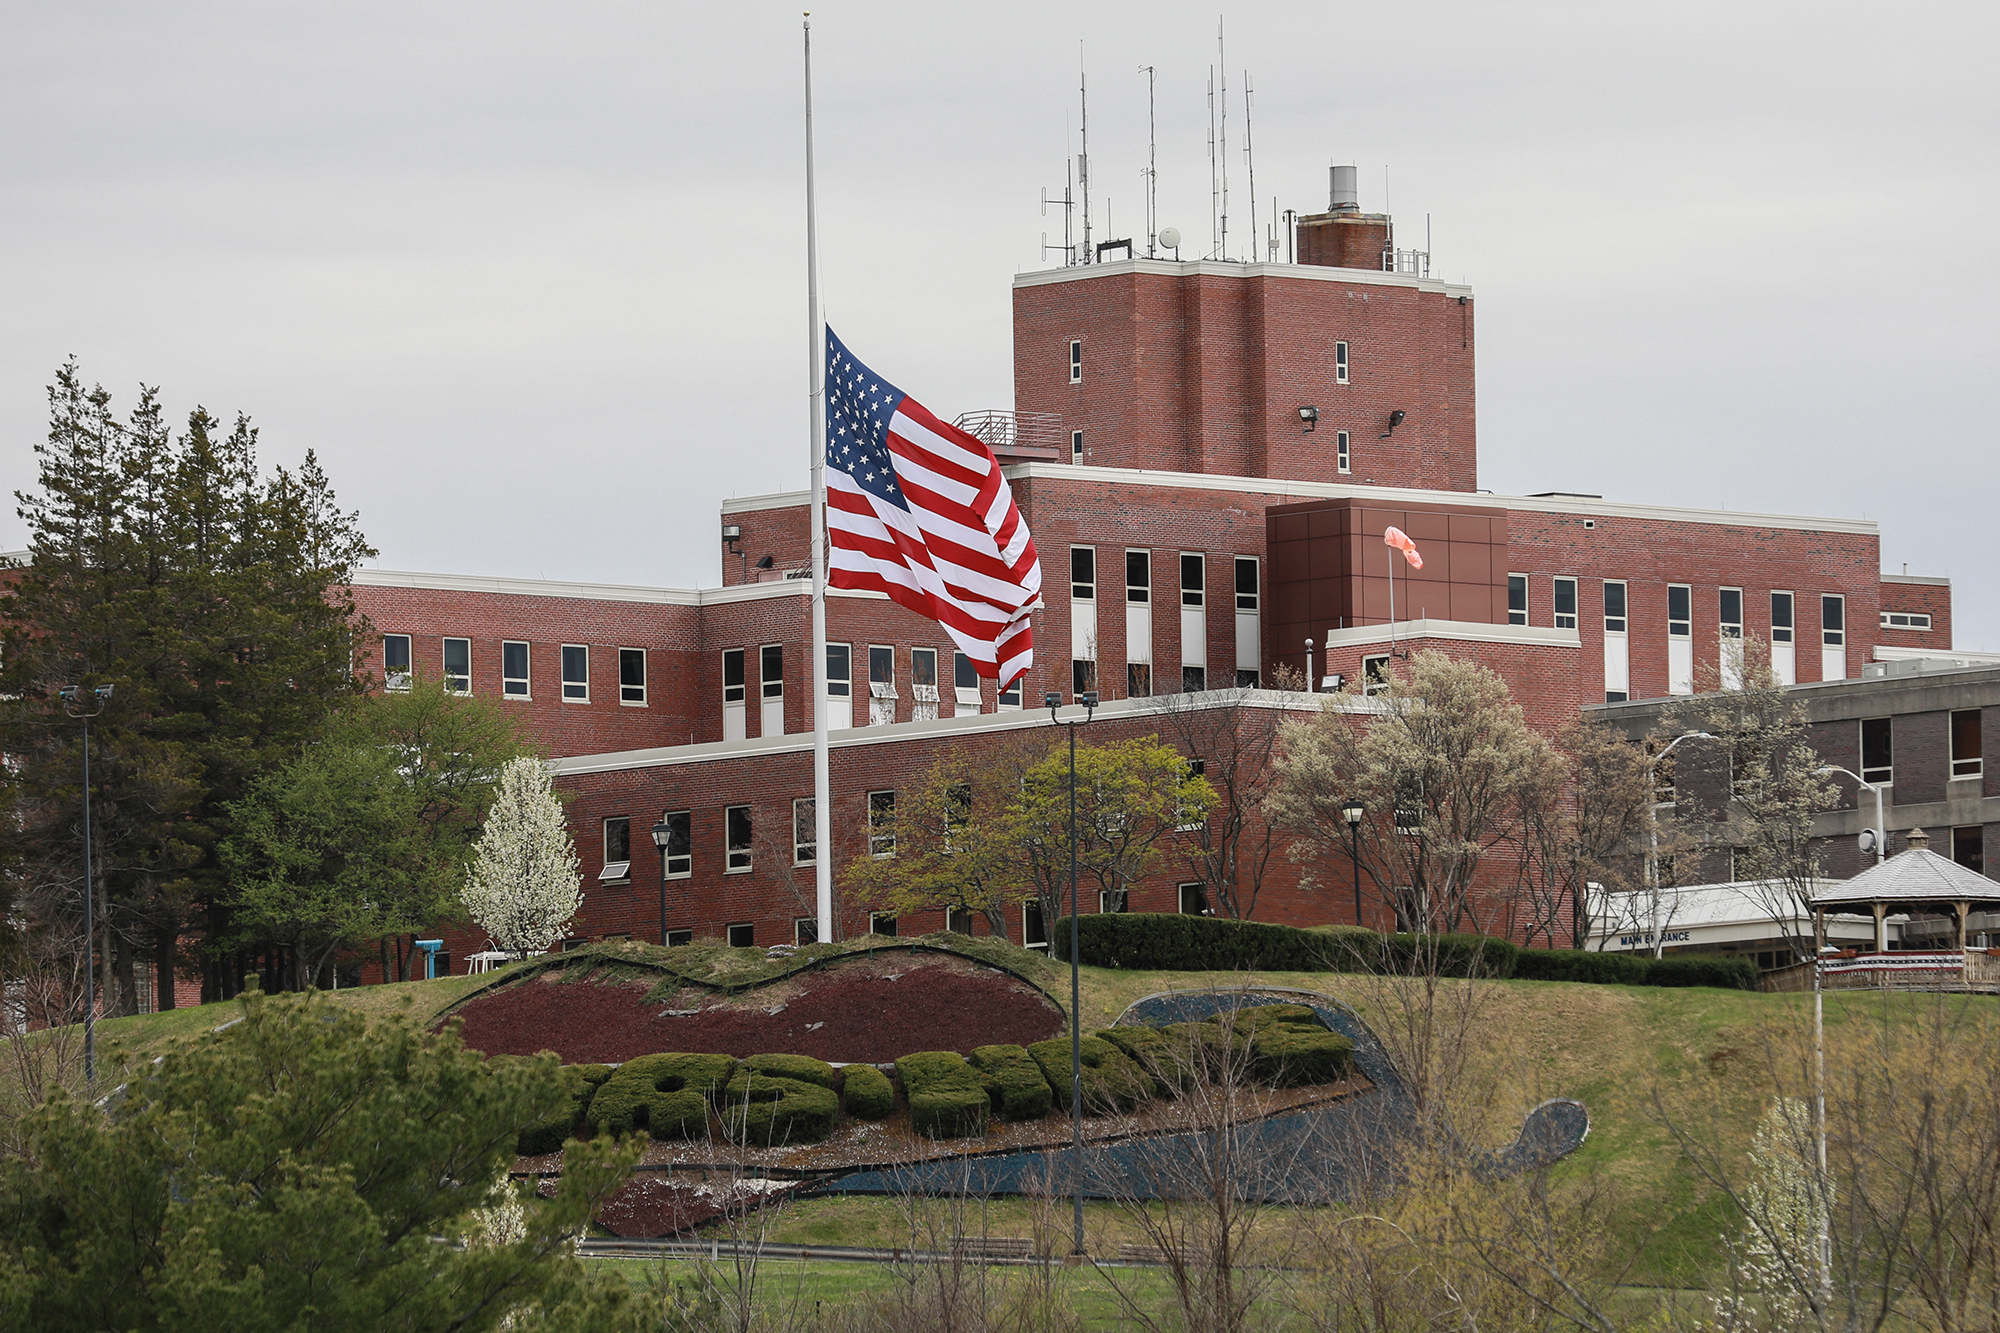 An American flag flies at half-mast outside the Holyoke Soldiers' Home on April 29, 2020 in Holyoke, Massachusetts.